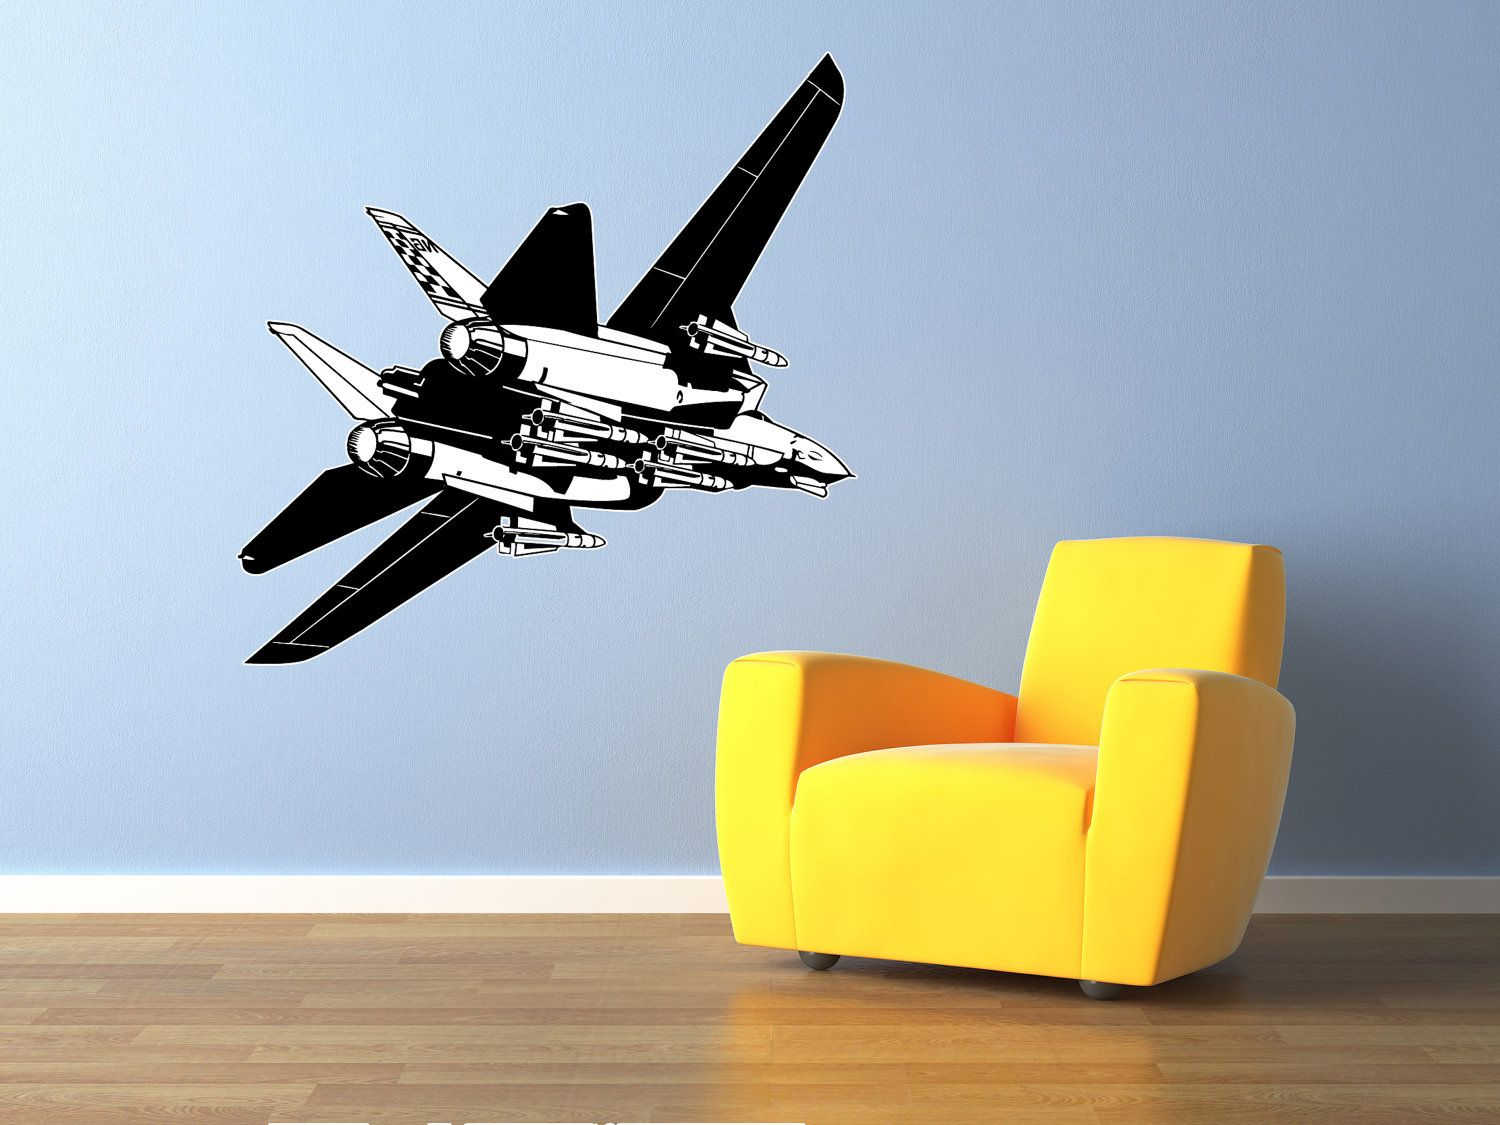 F16 Fighter Jet Airplane Wall Decal Vinyl Aviation Sticker 44x29 Home Decor 456 44 99